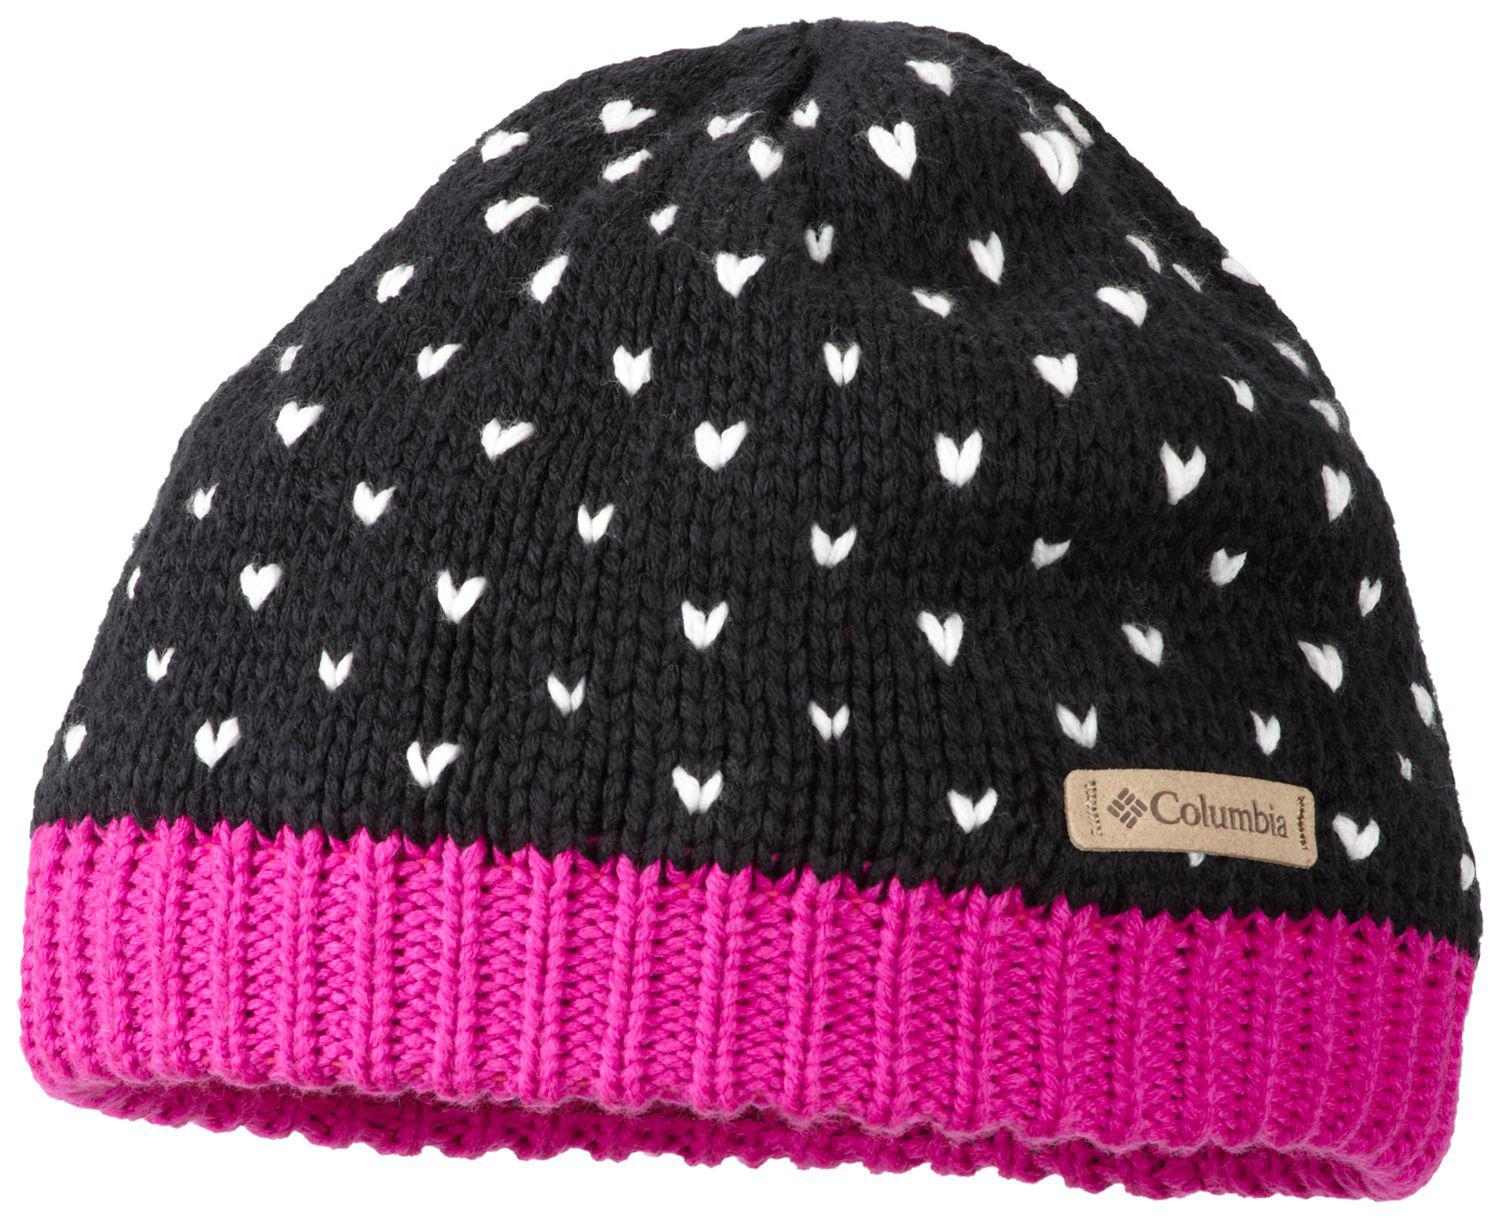 99dc1902105 Lyst - Columbia Girls  Powder Princess Hat in Black